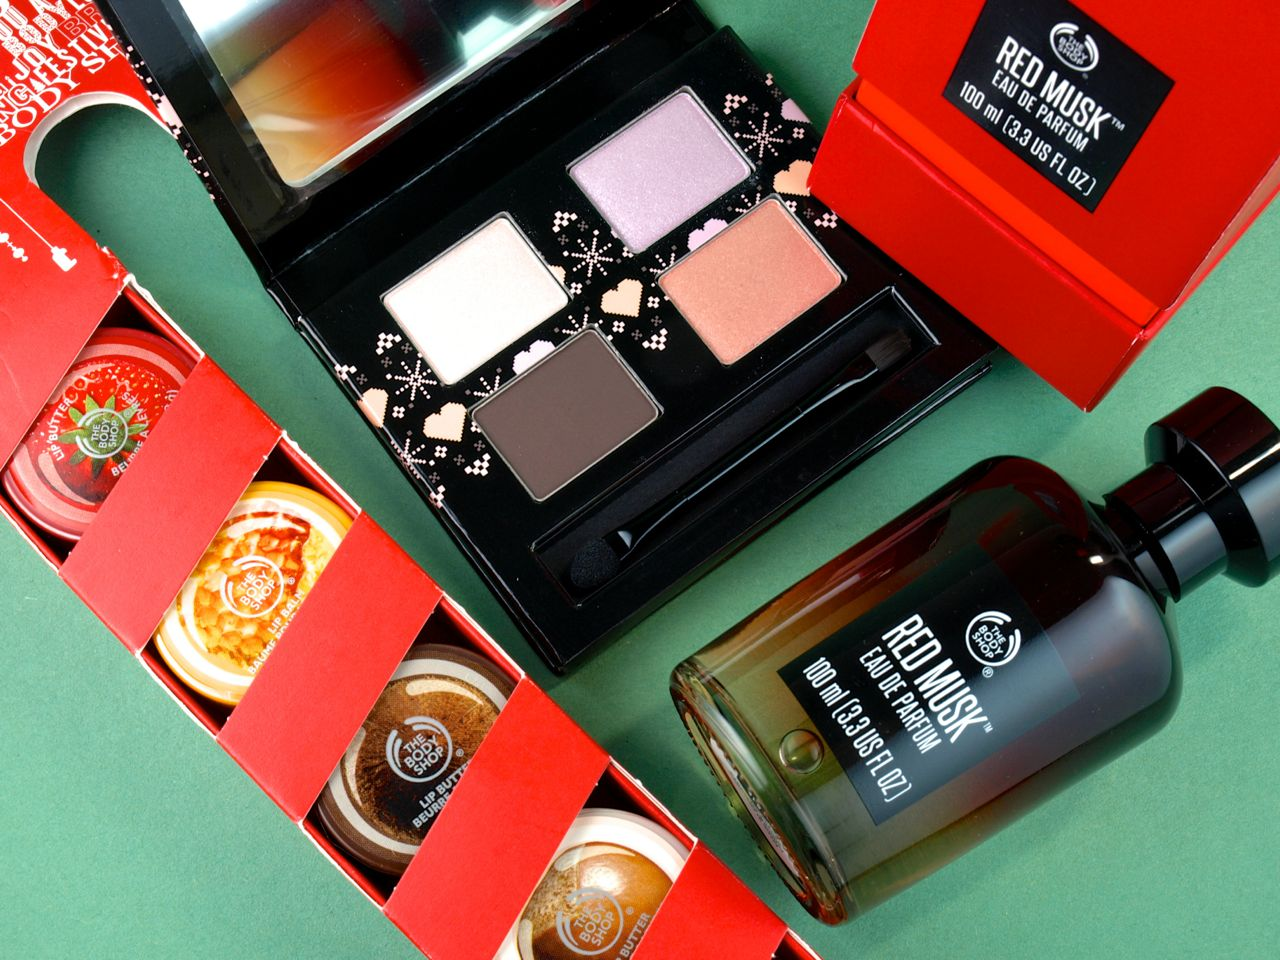 Stocking Stuffers from The Body Shop